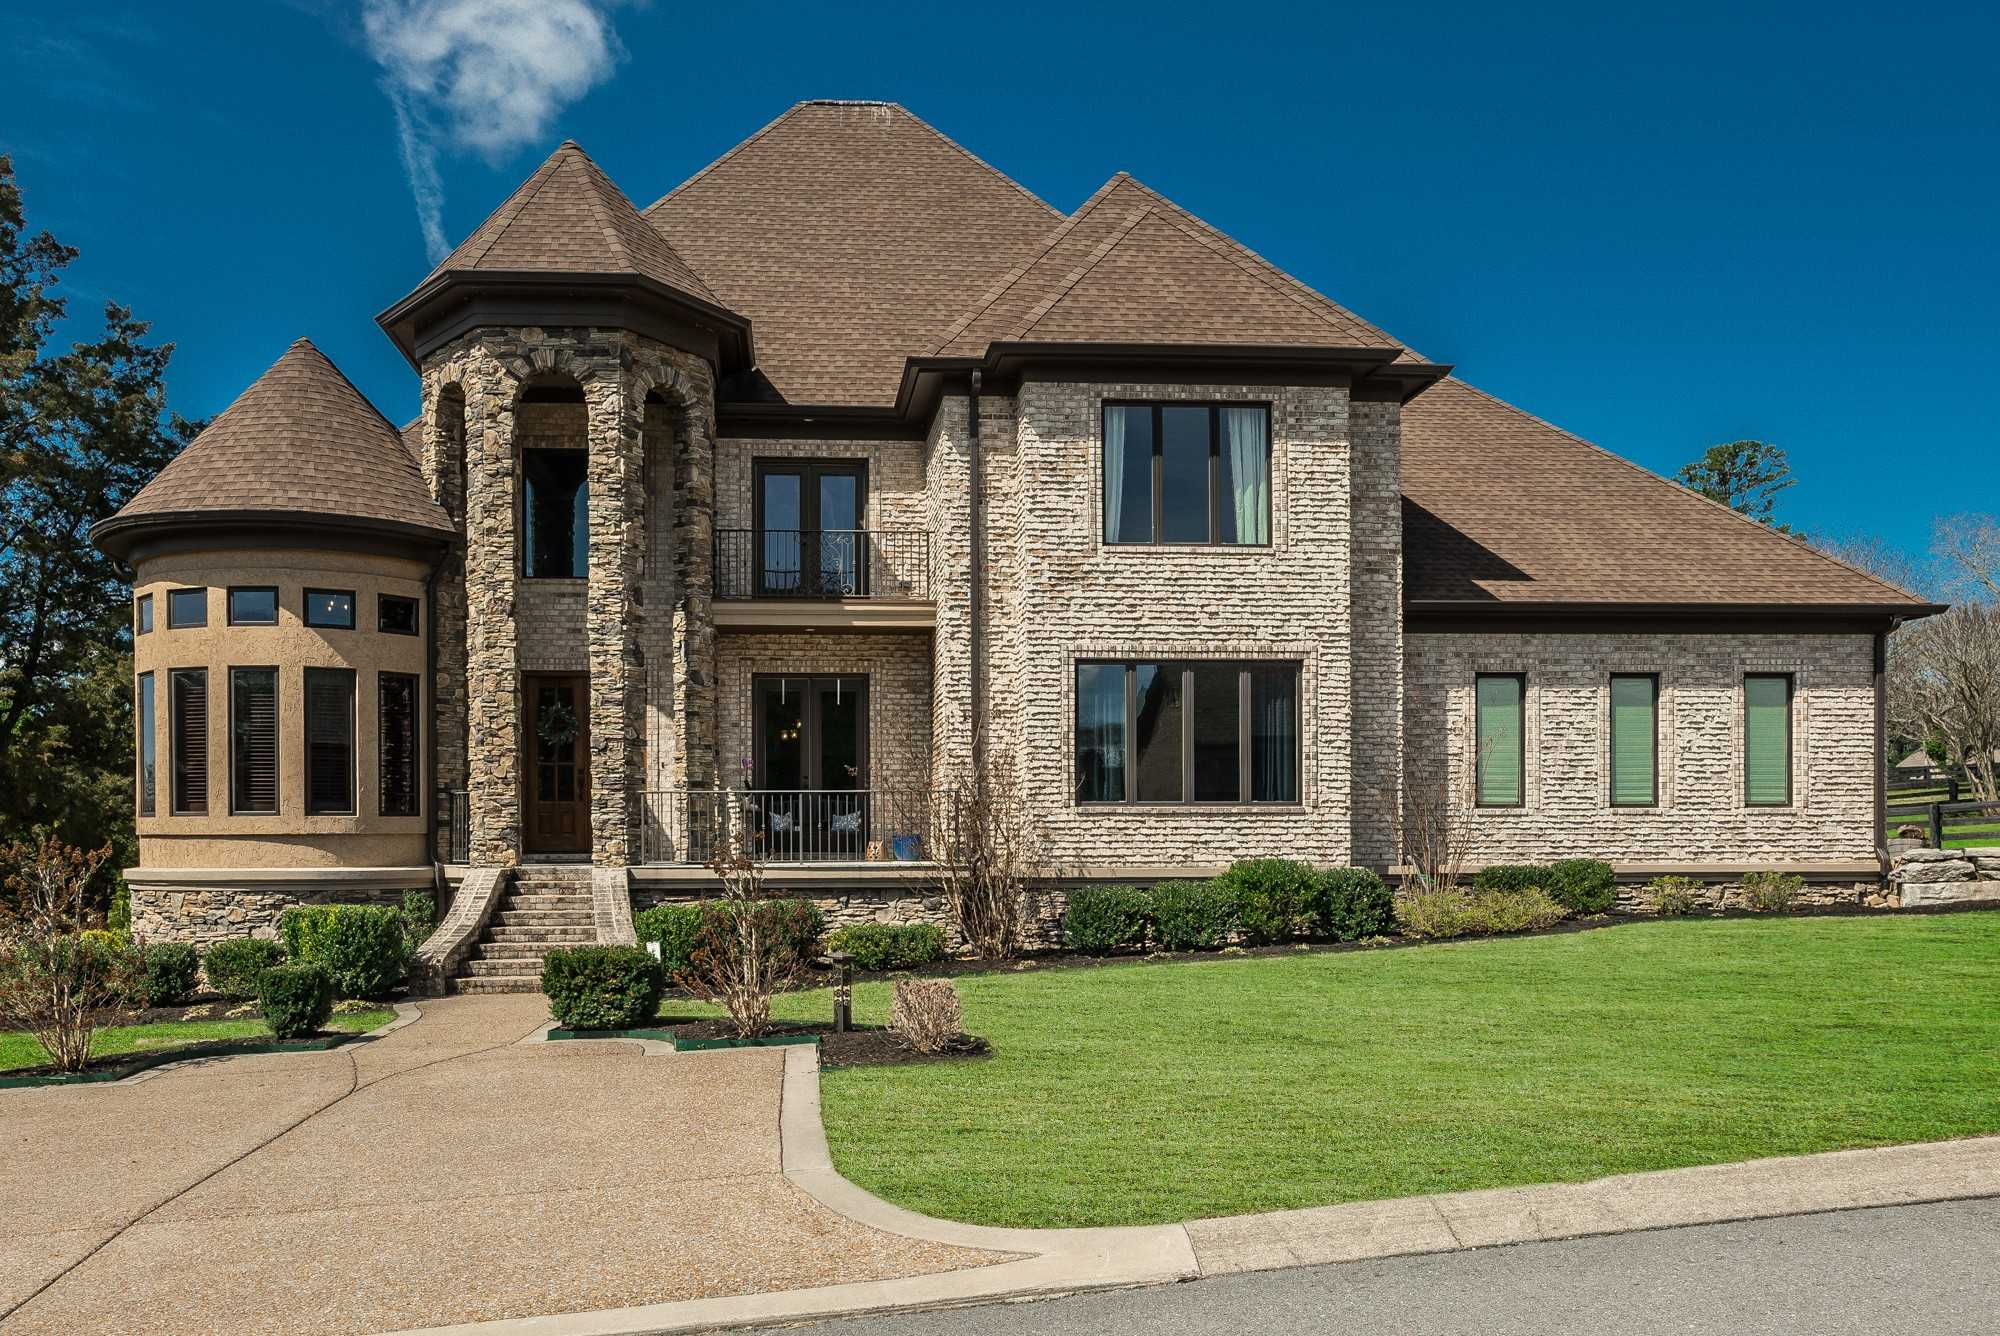 $1,025,000 - 5Br/5Ba -  for Sale in Emerald Point Phase 1, Gallatin